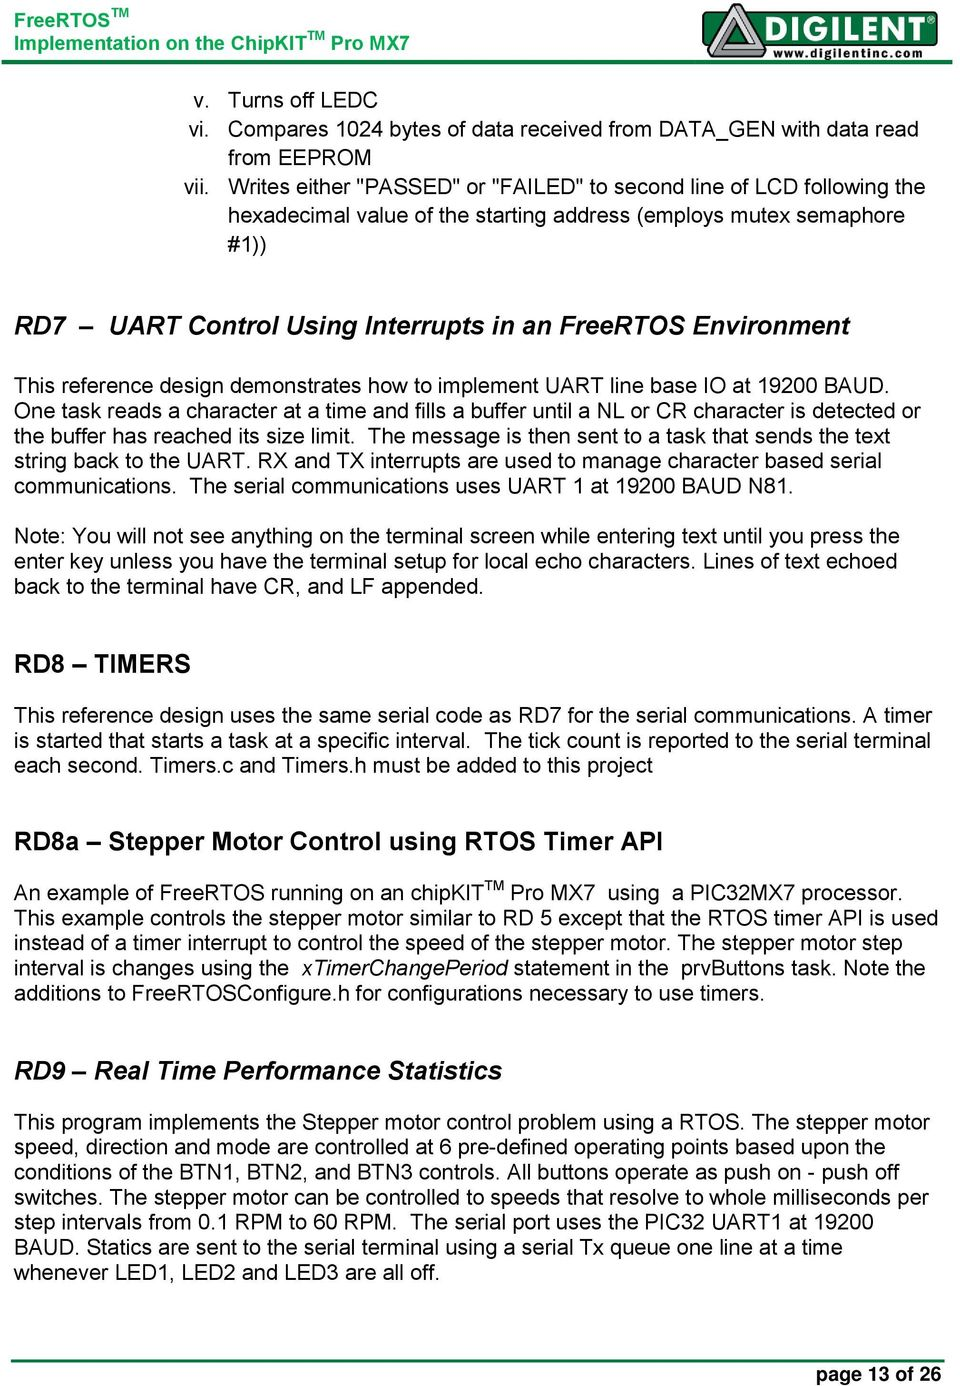 Project 11: FreeRTOS TM Real-Time Control of a Stepper Motor - PDF